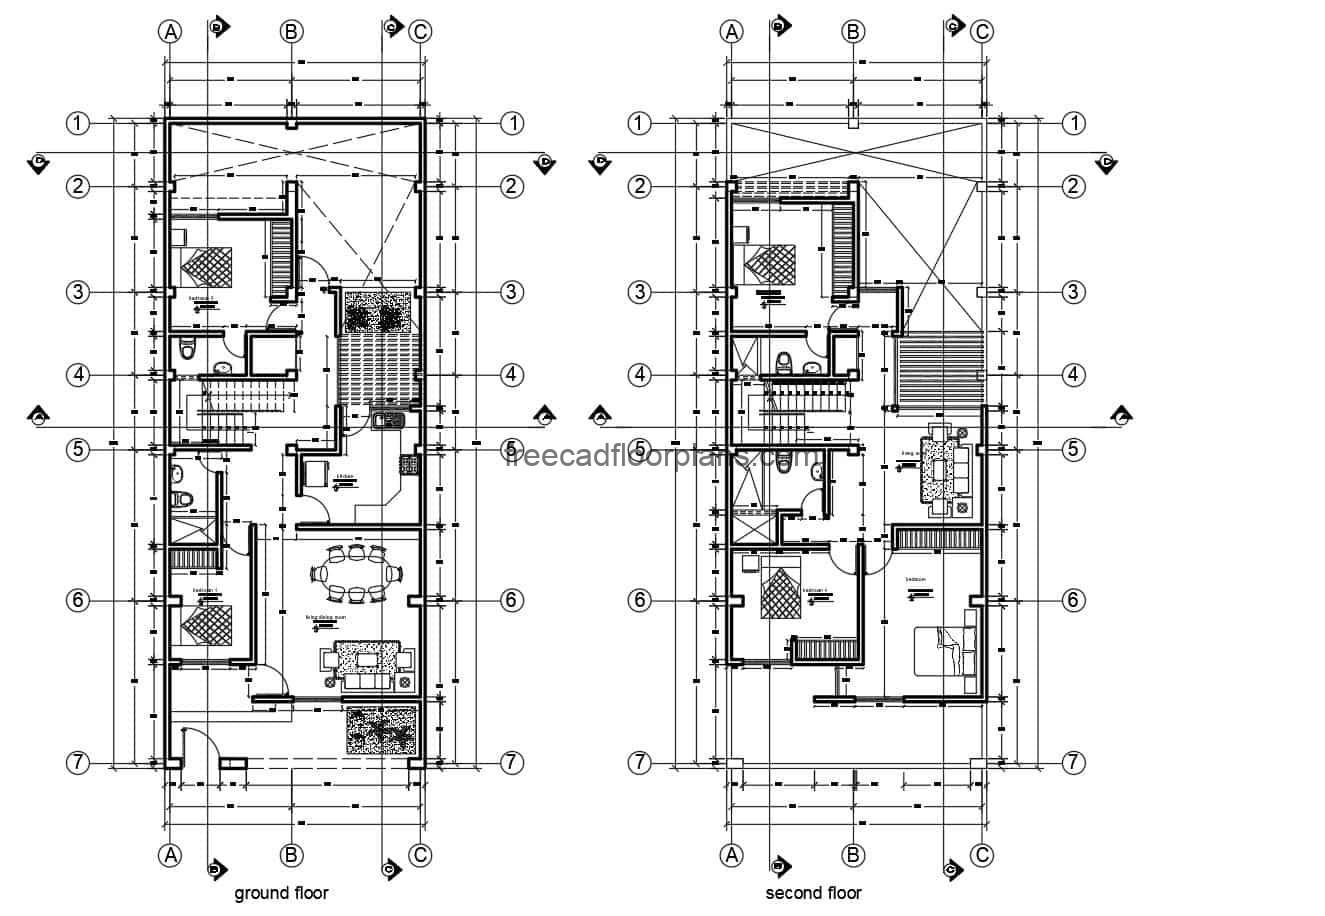 Architectural 2D plans of a rectangular residence with a minimalist two-level facade, with five bedrooms in total, living room, kitchen, dining room, four bathrooms and family room. Blueprints 2D in Autocad DWG format for free download with editable interior blocks.